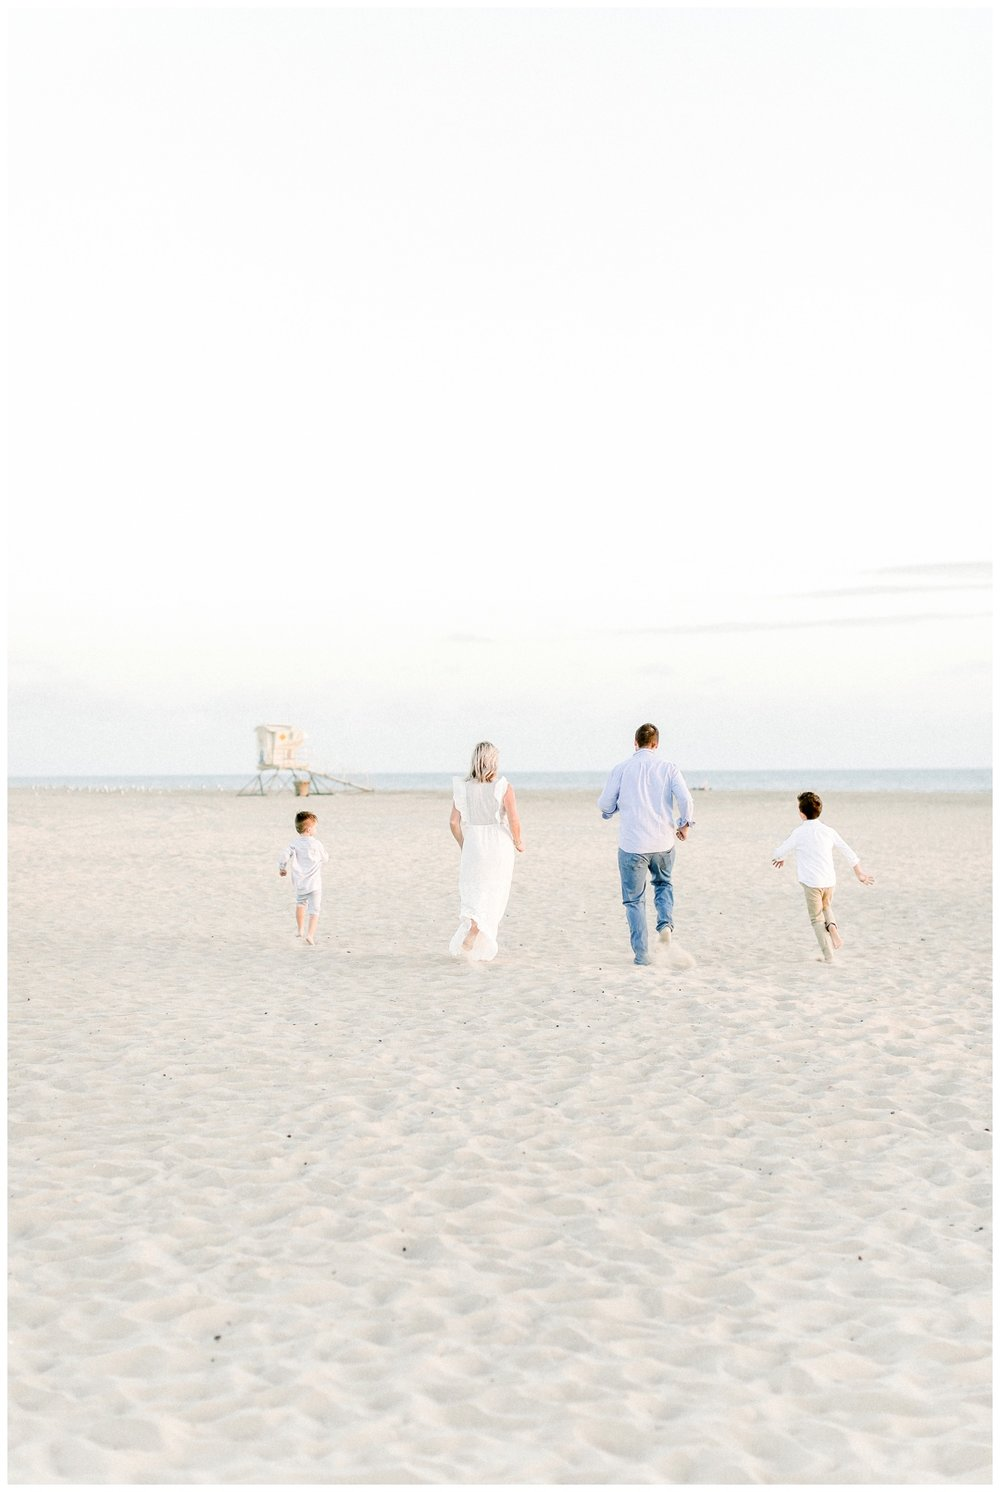 Newport_Beach_Family_Photographer_Newport_Beach_Newborn_Photographer_Orange_County_Family_Photographer_Cori_Kleckner_Photography_Huntington_Beach_San_Clemente_Family_Session_Photography__2333.jpg